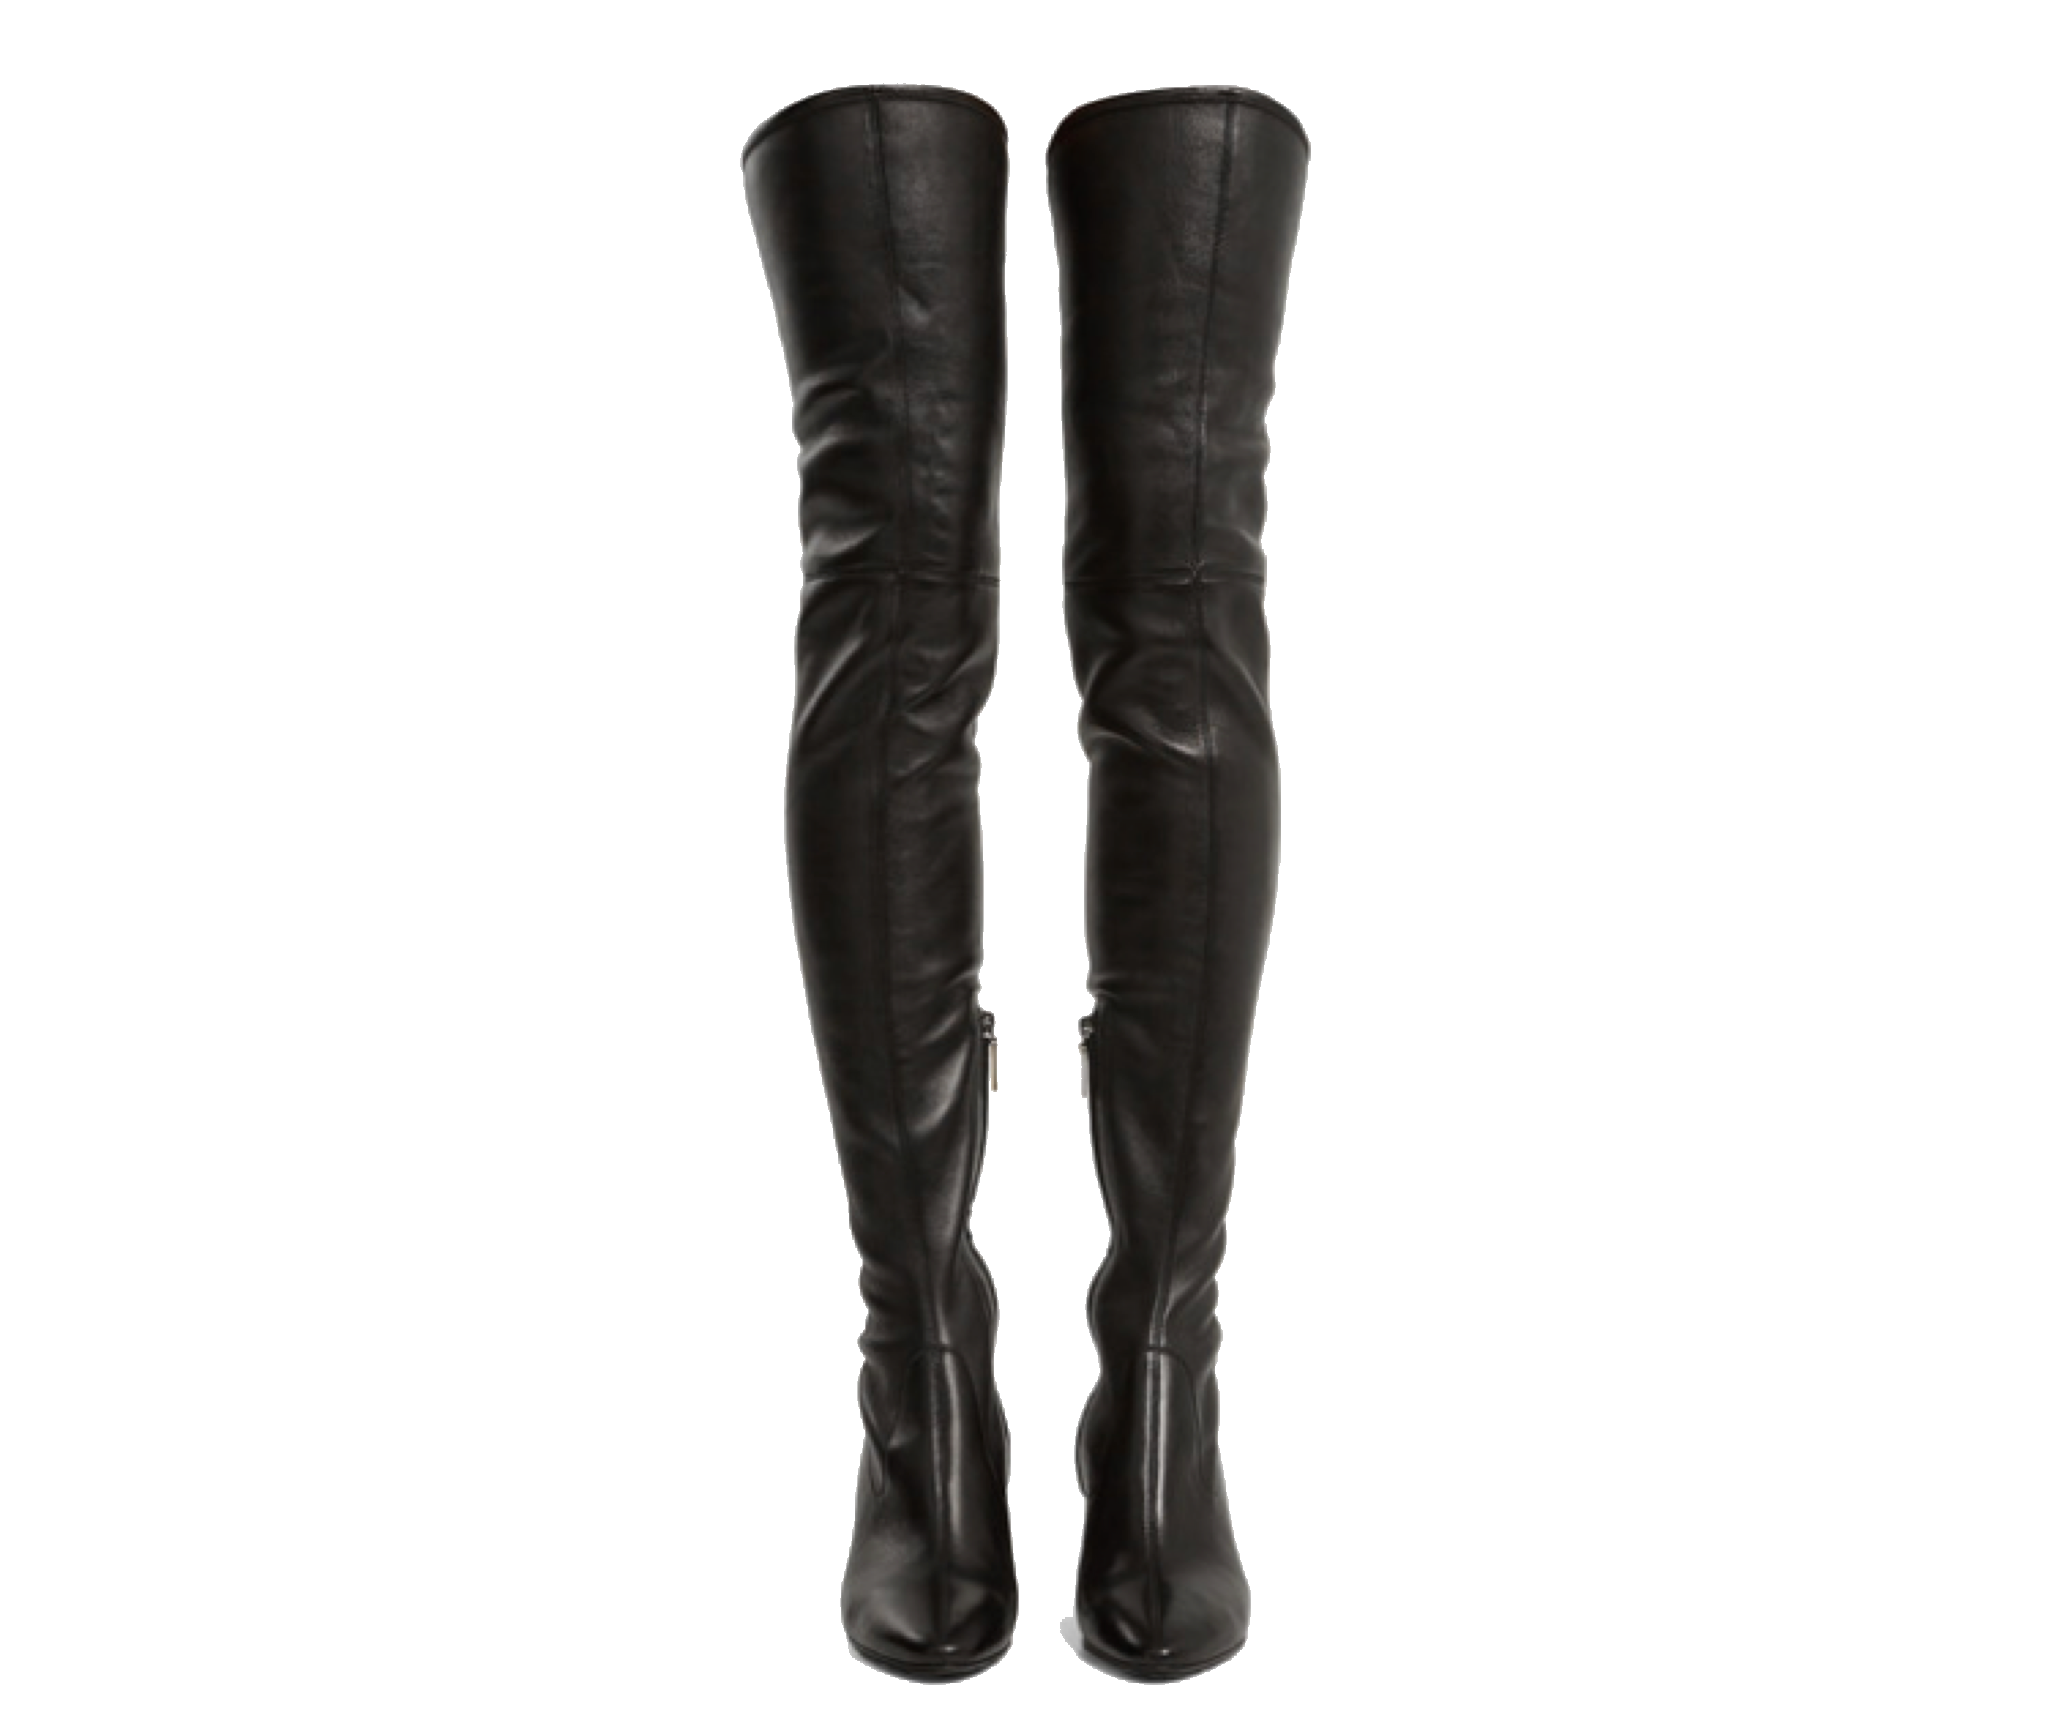 Black Boots Polyvore Moodboard Filler Boots Thigh High Boots Fashion Boots